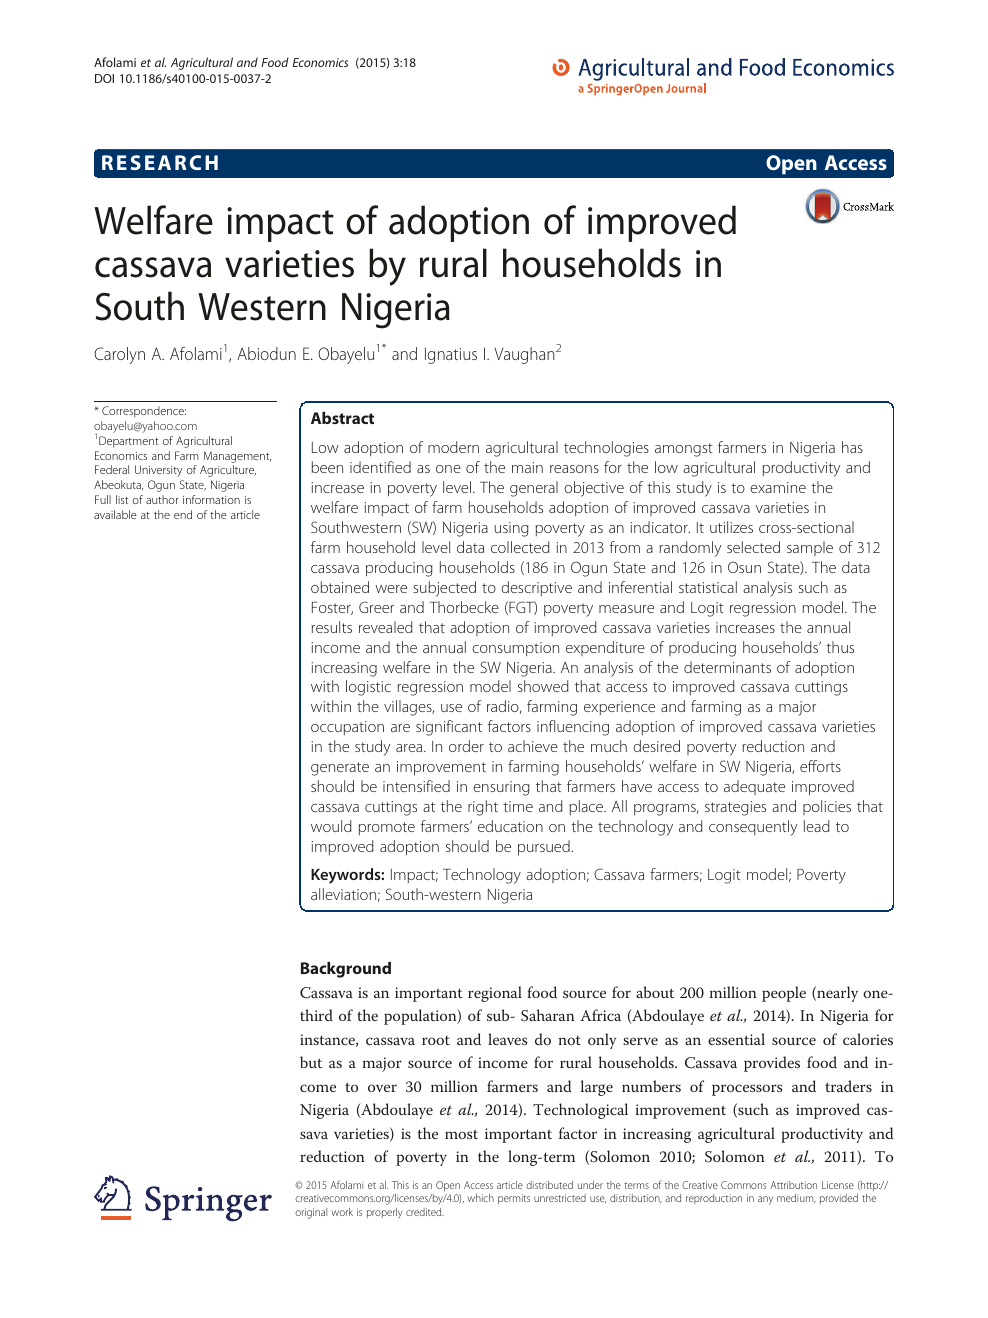 Welfare impact of adoption of improved cassava varieties by